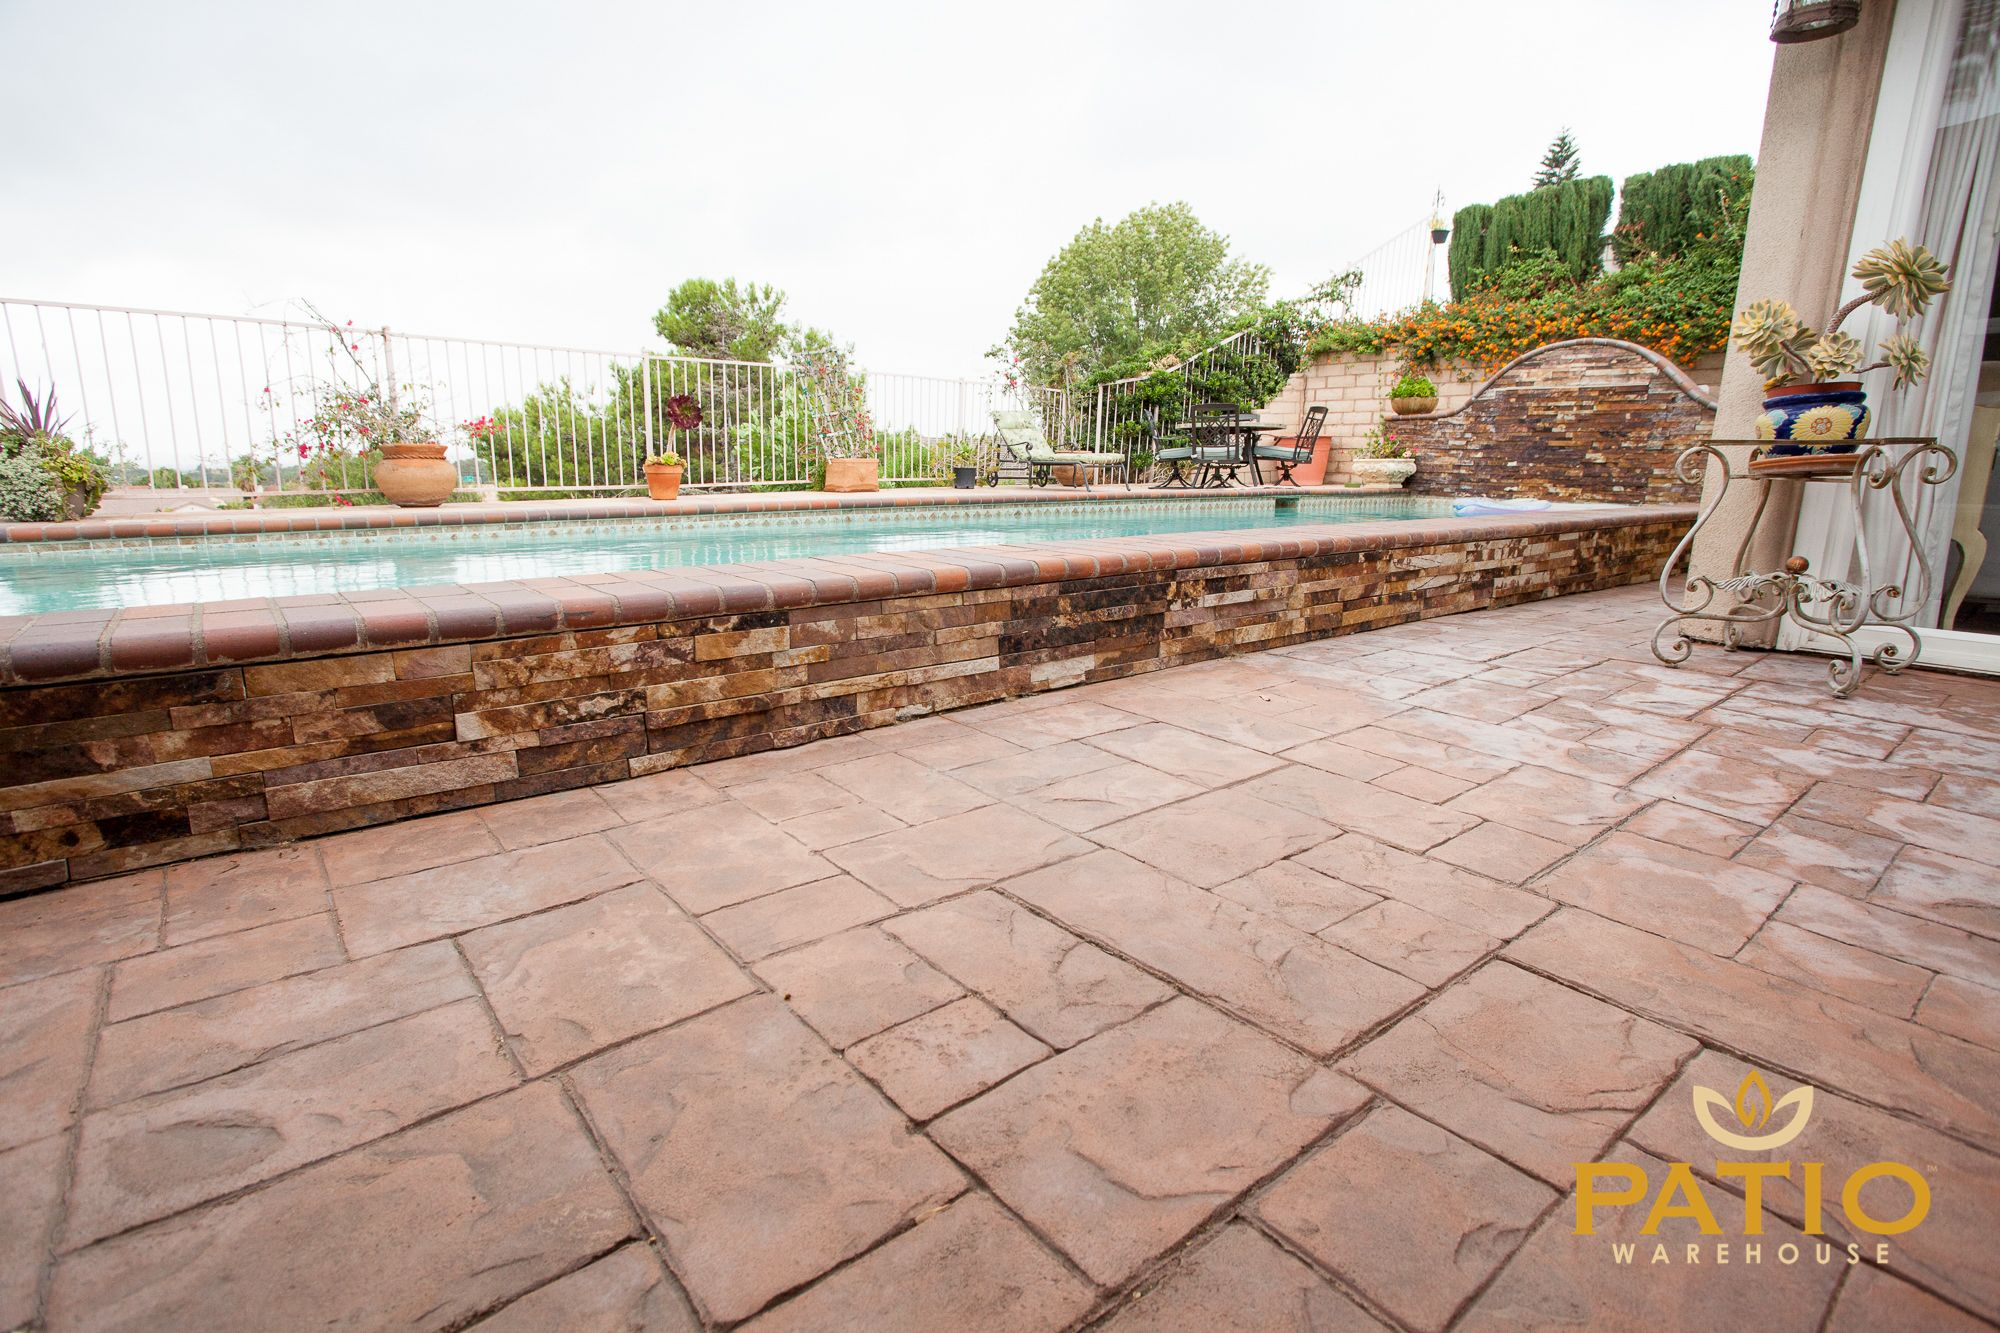 Discover The Outdoor Living Space Of Your Dreams With Patio Warehouse Inc.